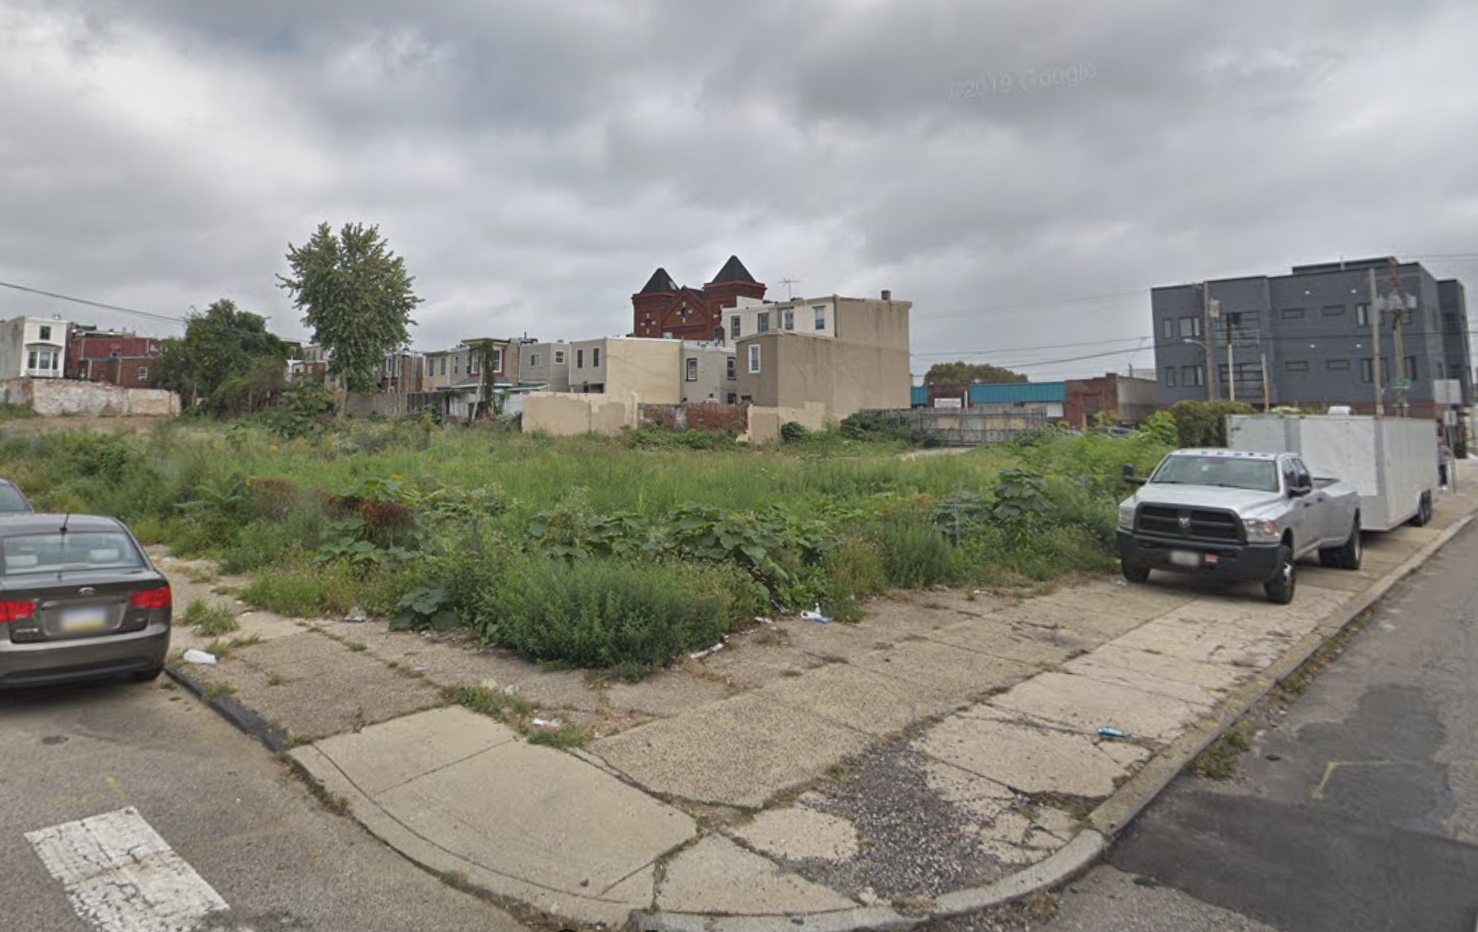 108 apartments coming to vacant Poplar St. lot